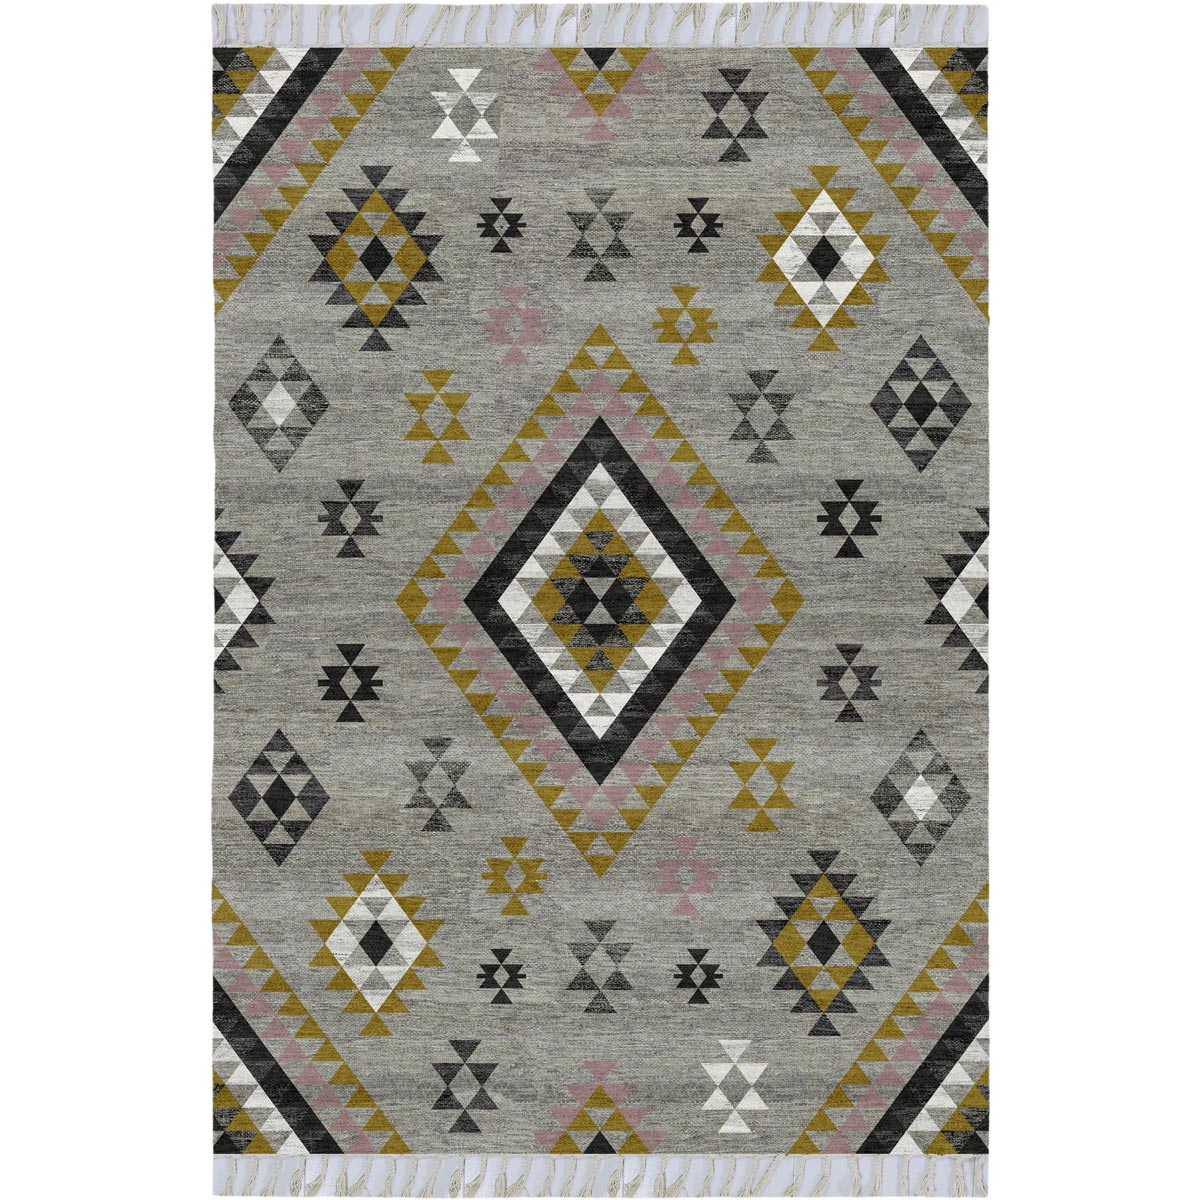 Tangier Rug 08 Grey/Yellow 1